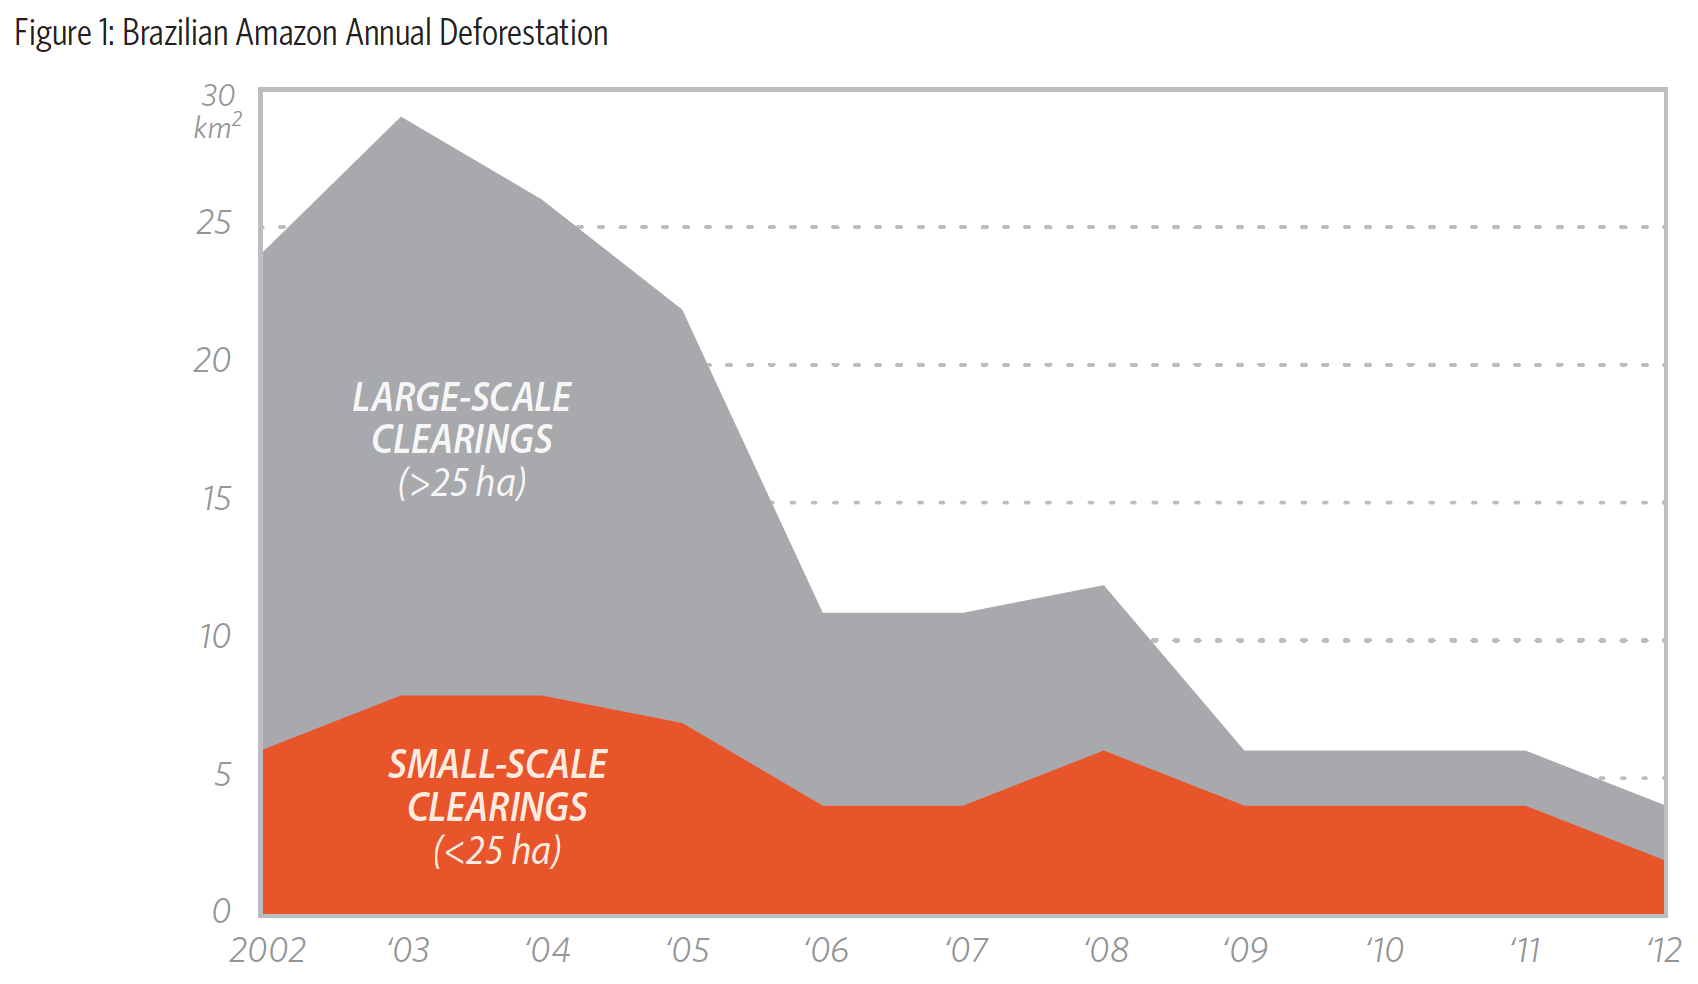 Forest loss in the Brazilian Amazon, 2002-2012, broken down by large-scale and small-scale deforestation. Courtesy of CPI/PUC-Rio